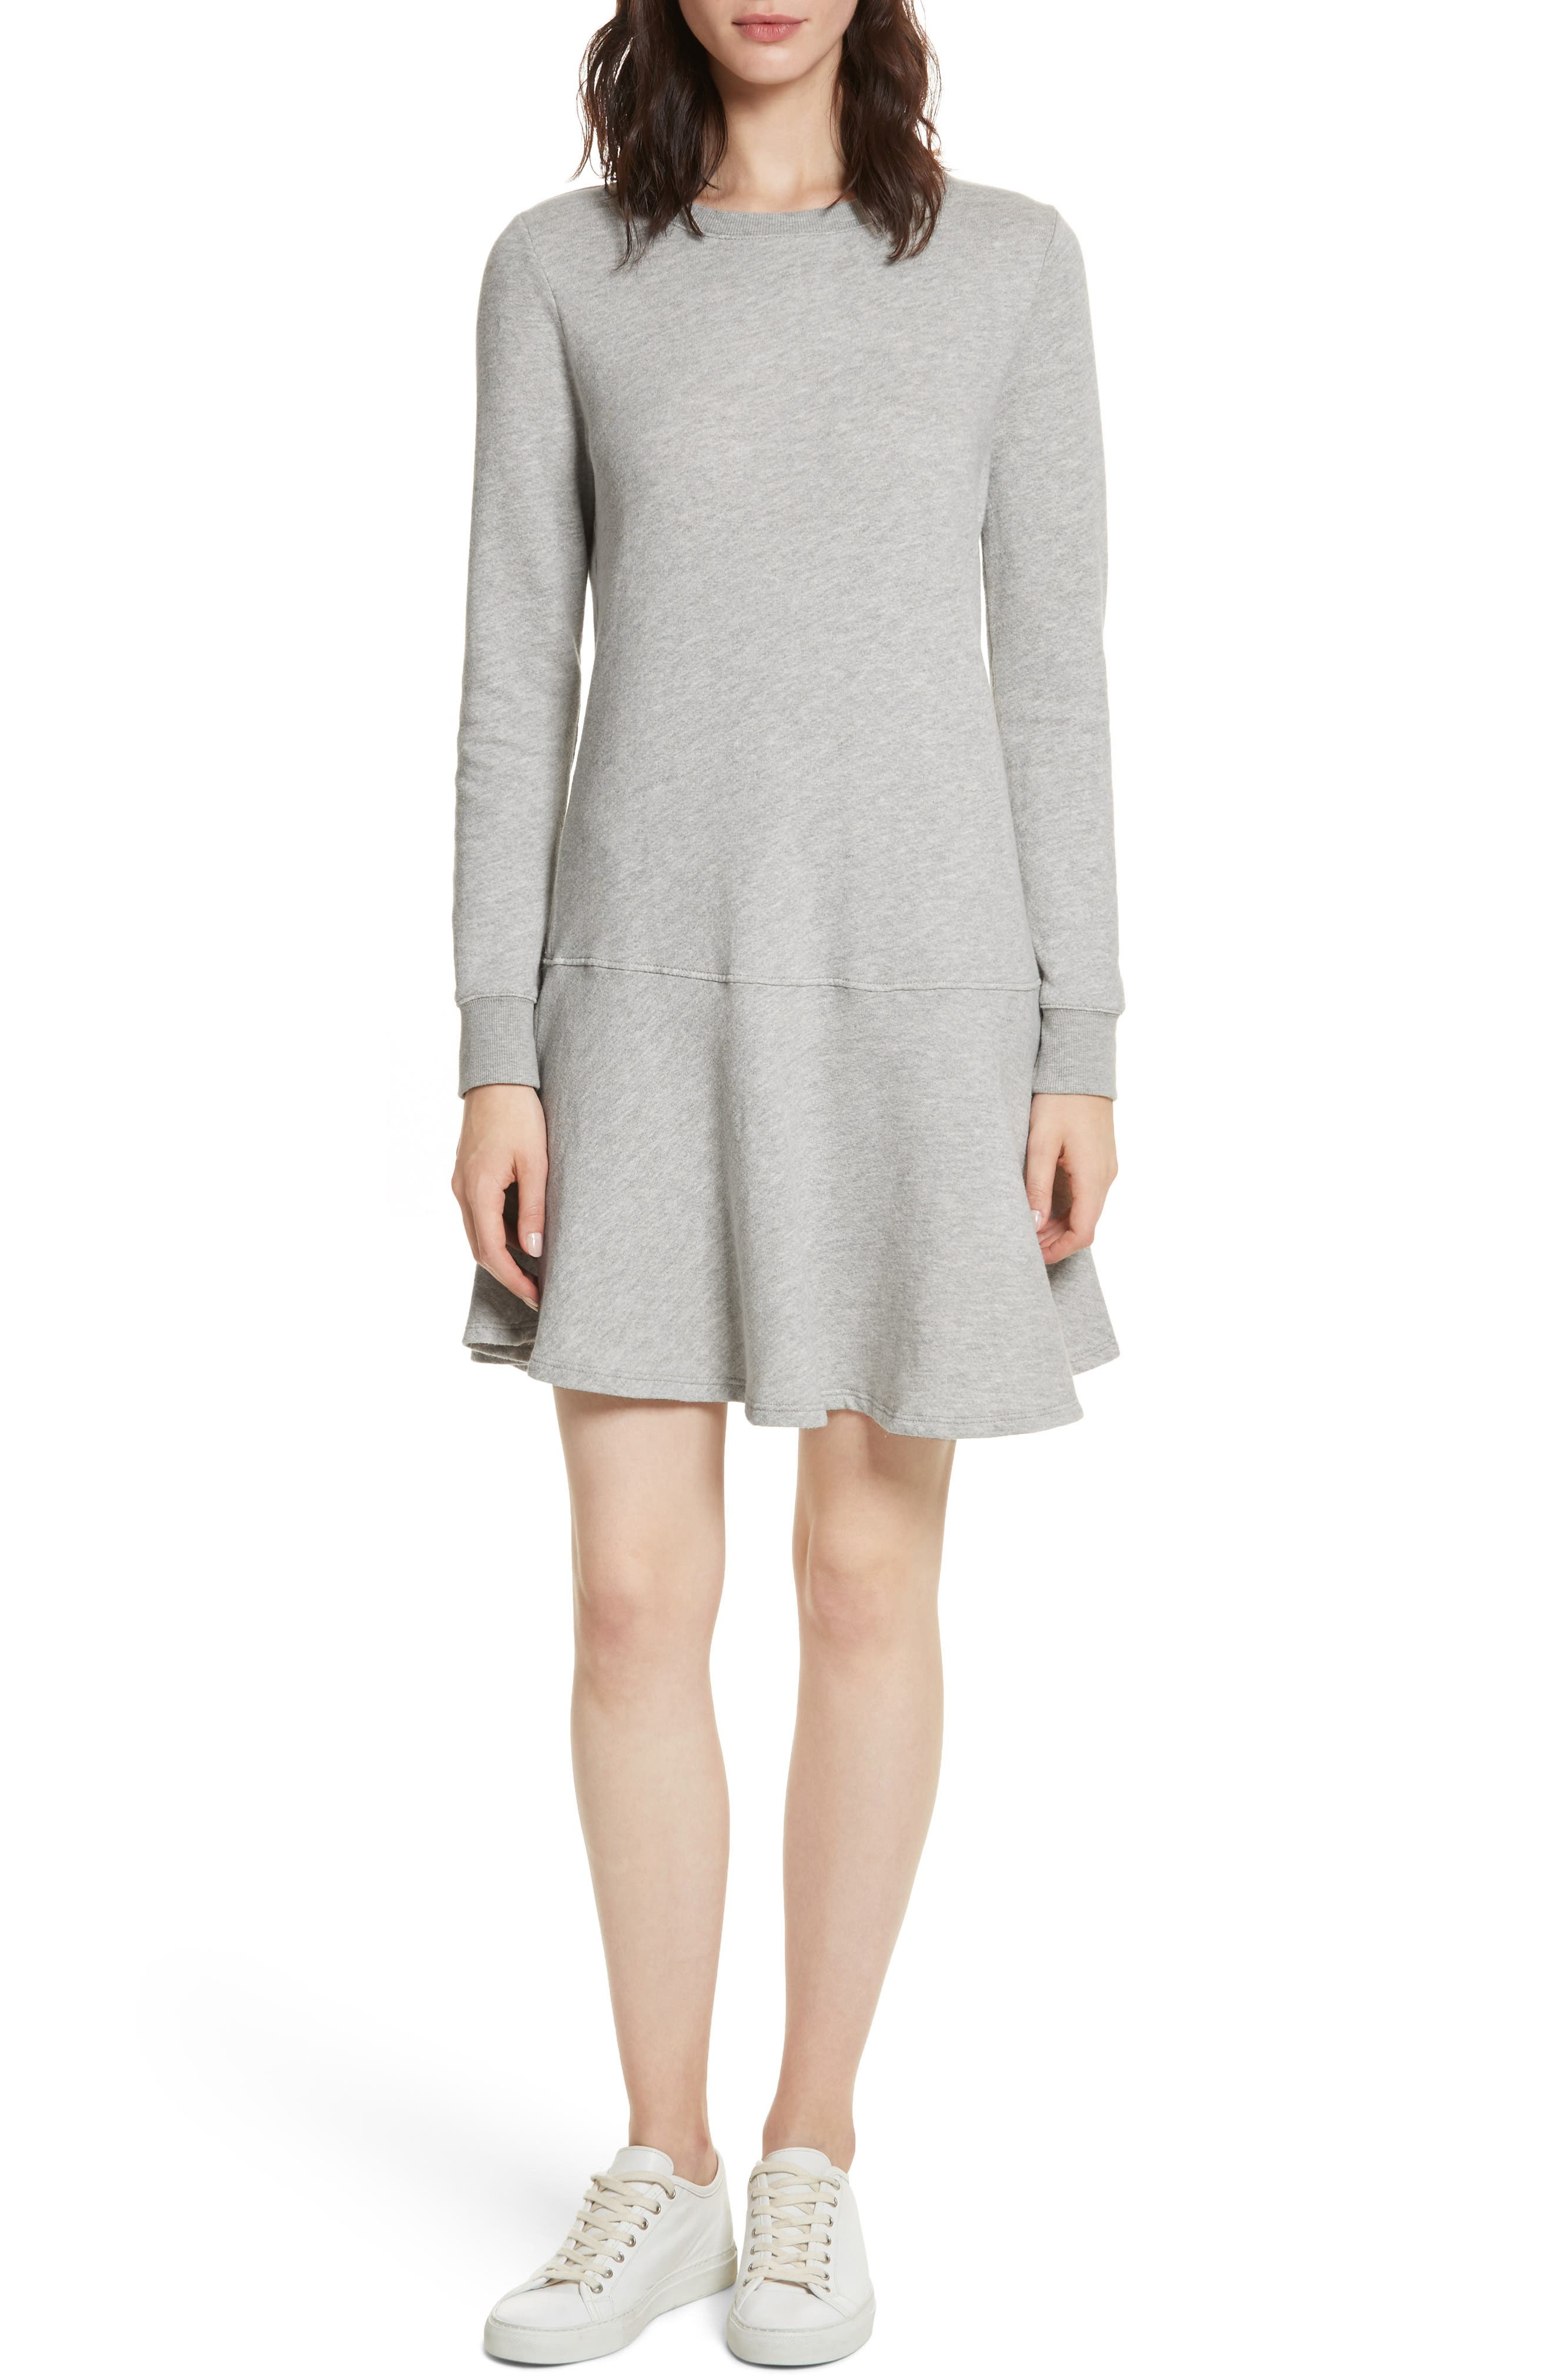 Runna French Terry A-Line Dress,                             Main thumbnail 1, color,                             033